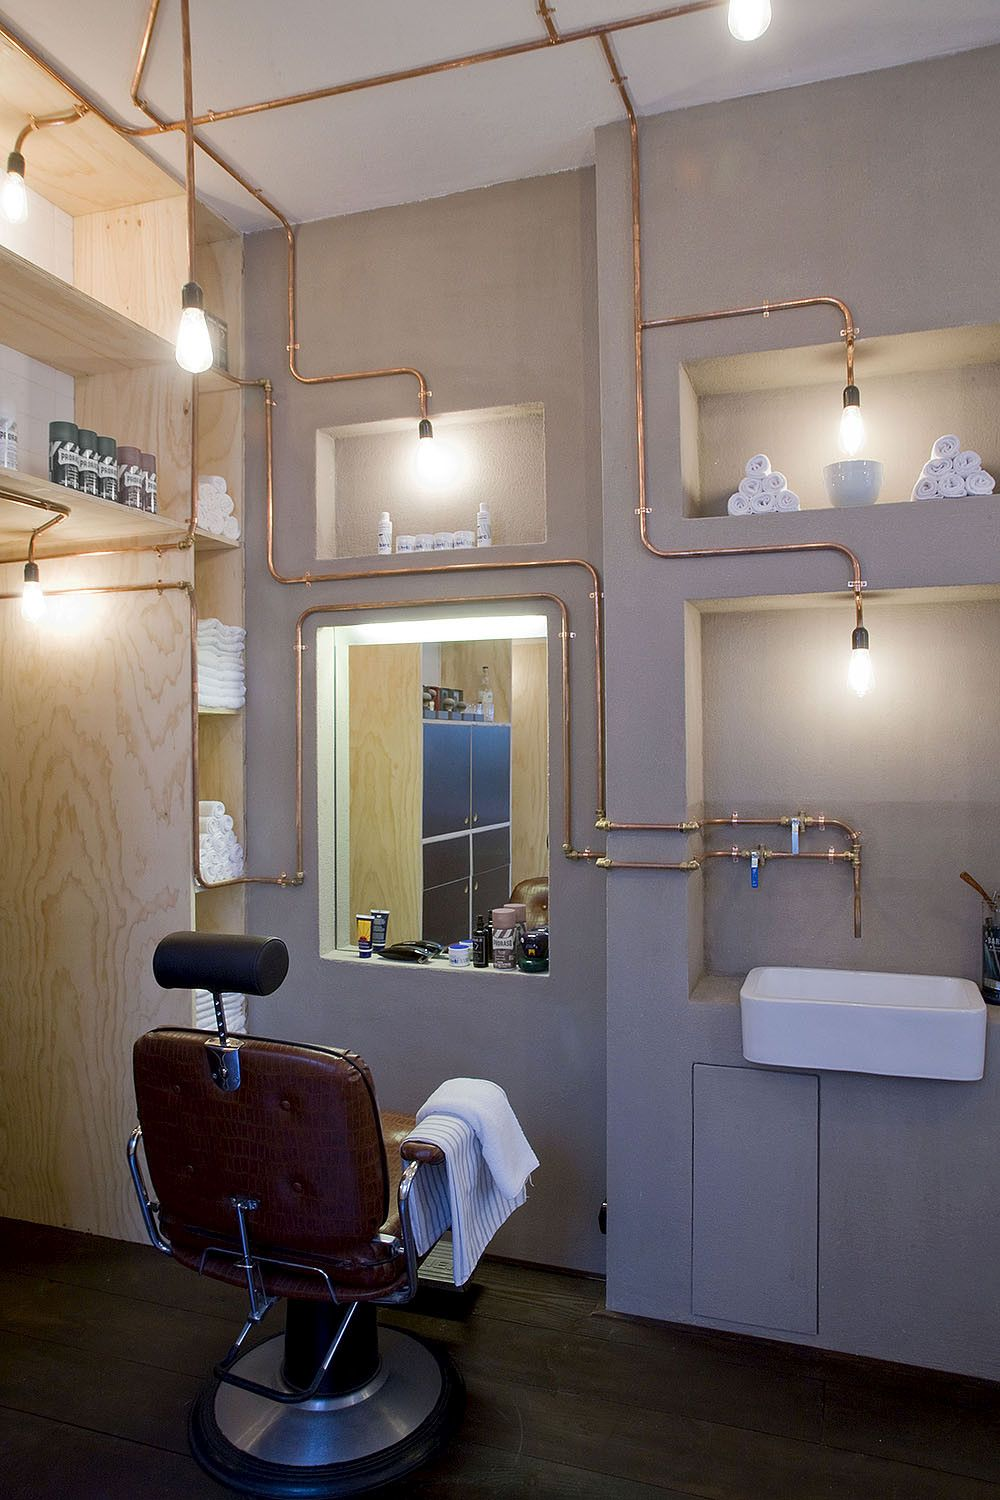 Amsterdam Barber Shop by Ard Hoksbergen